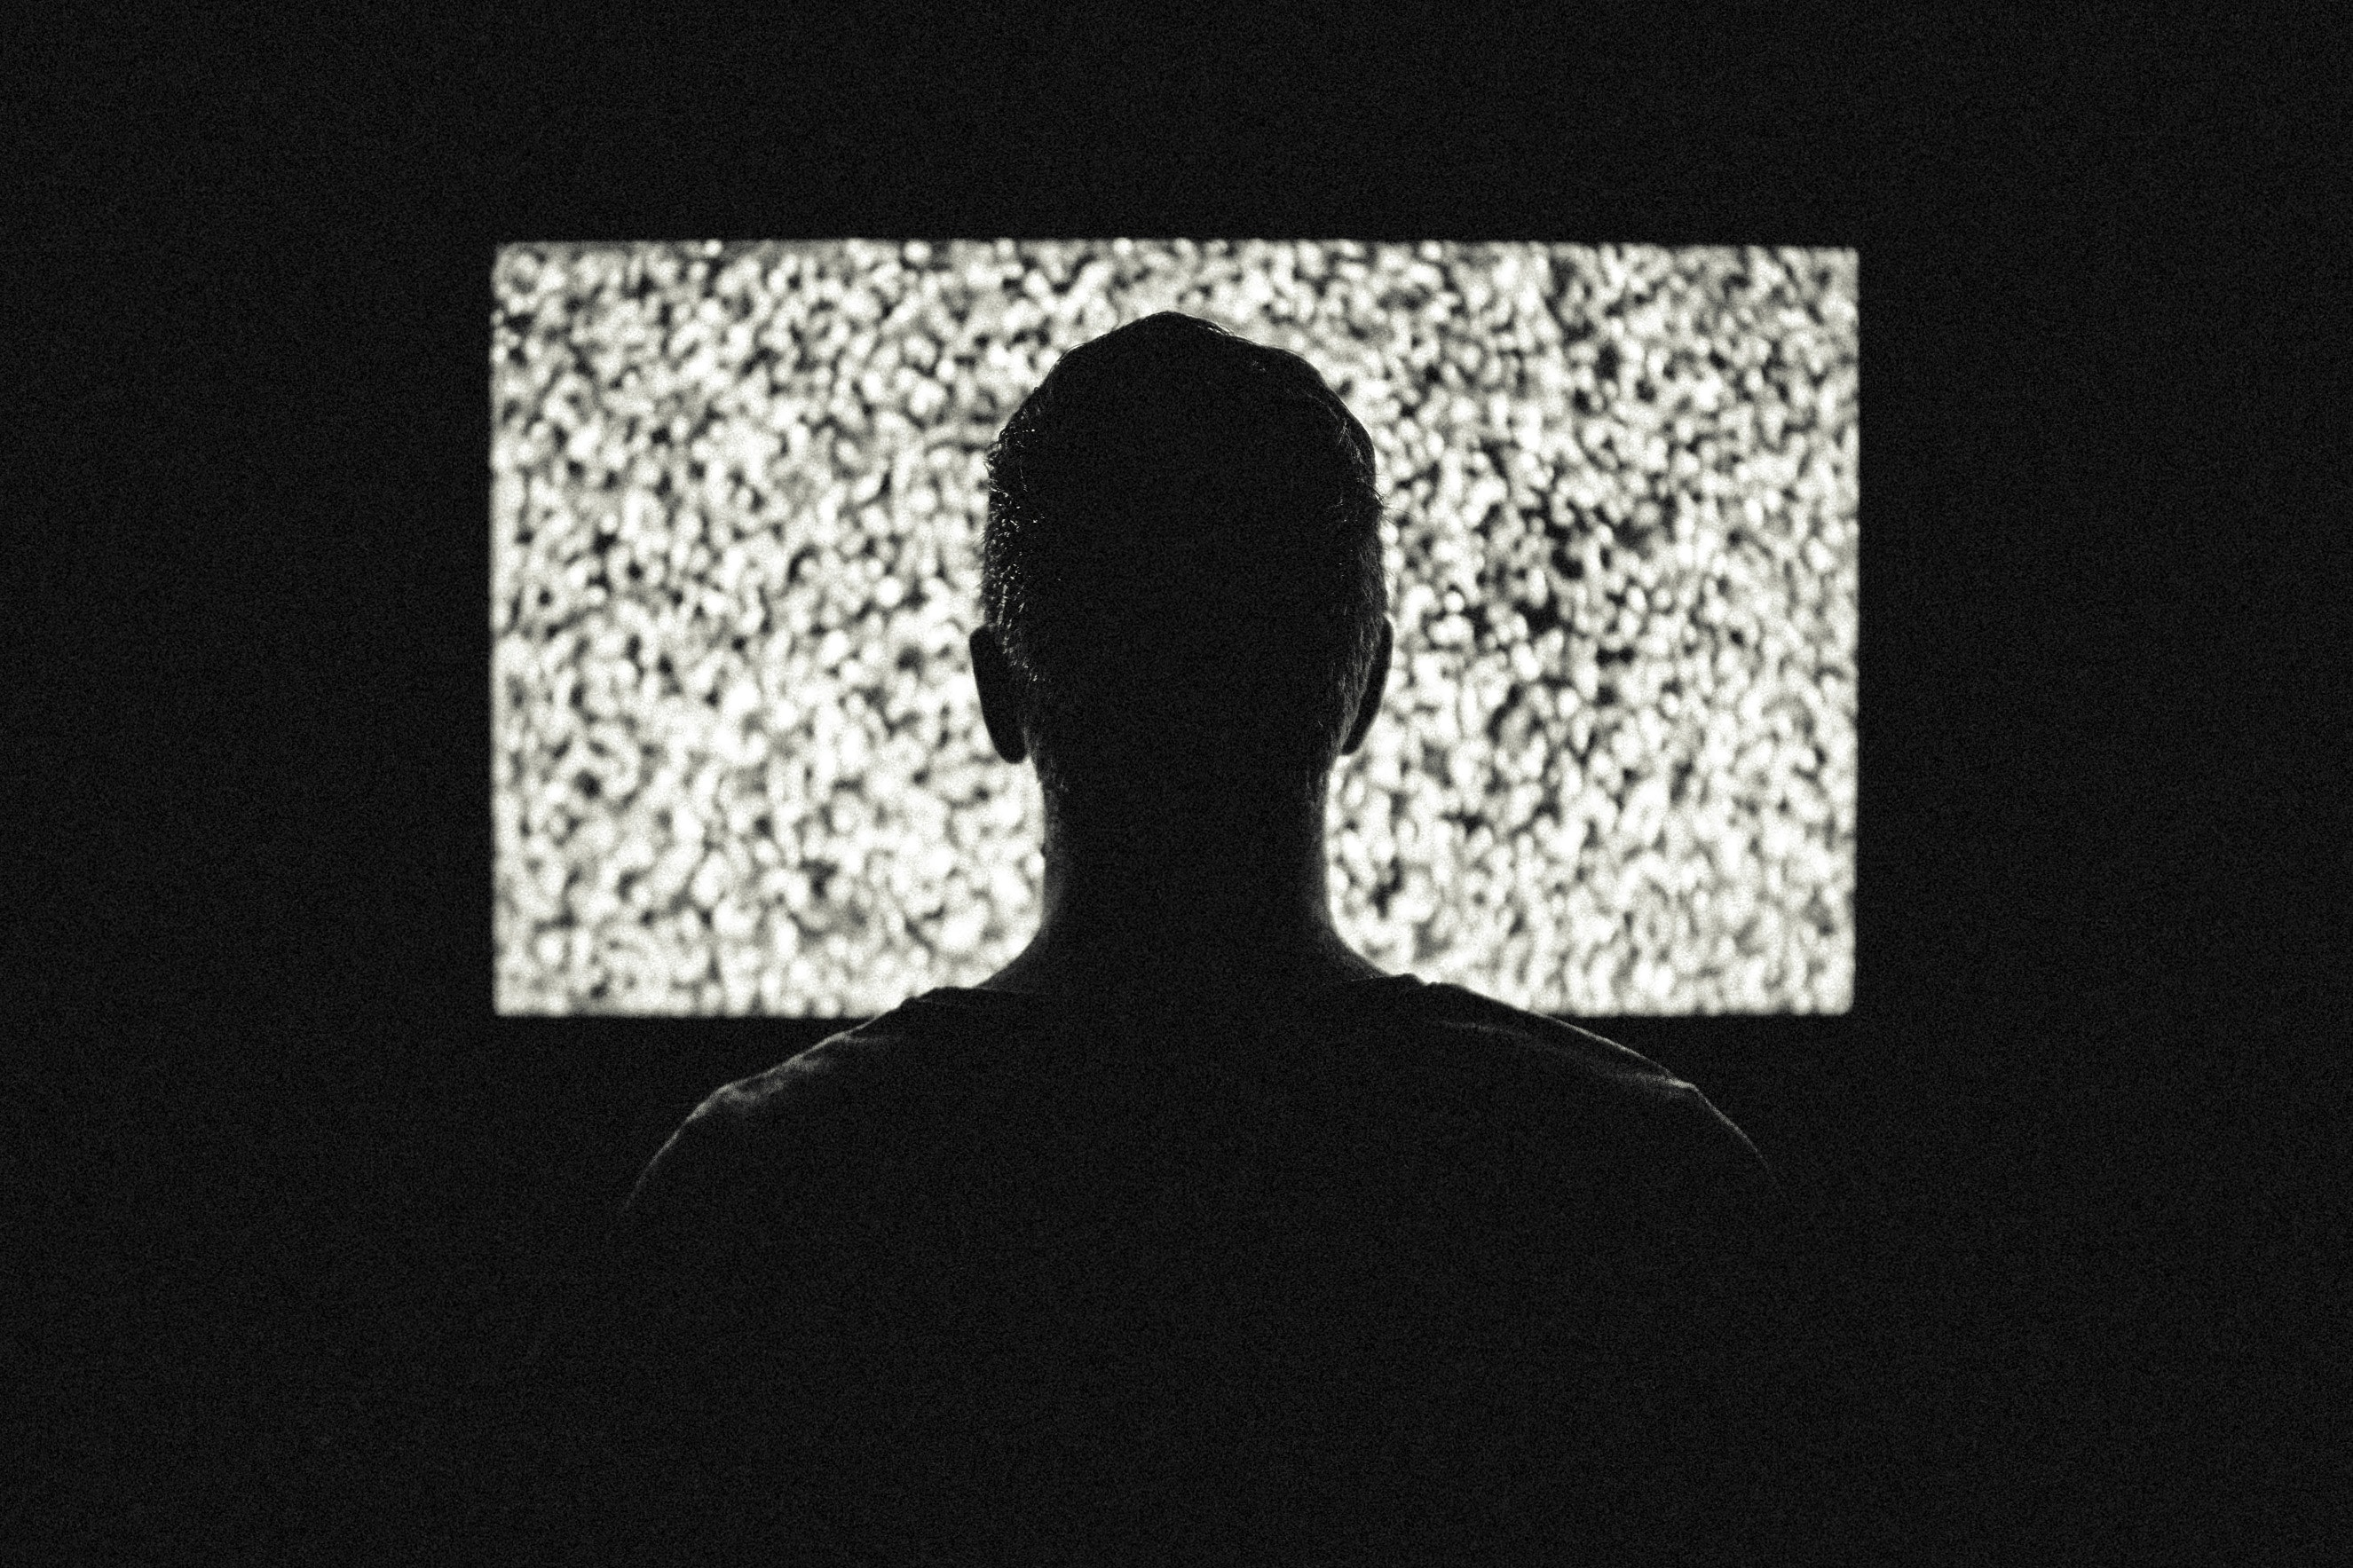 Television Technology: The Ways It's Changed How We Watch TV